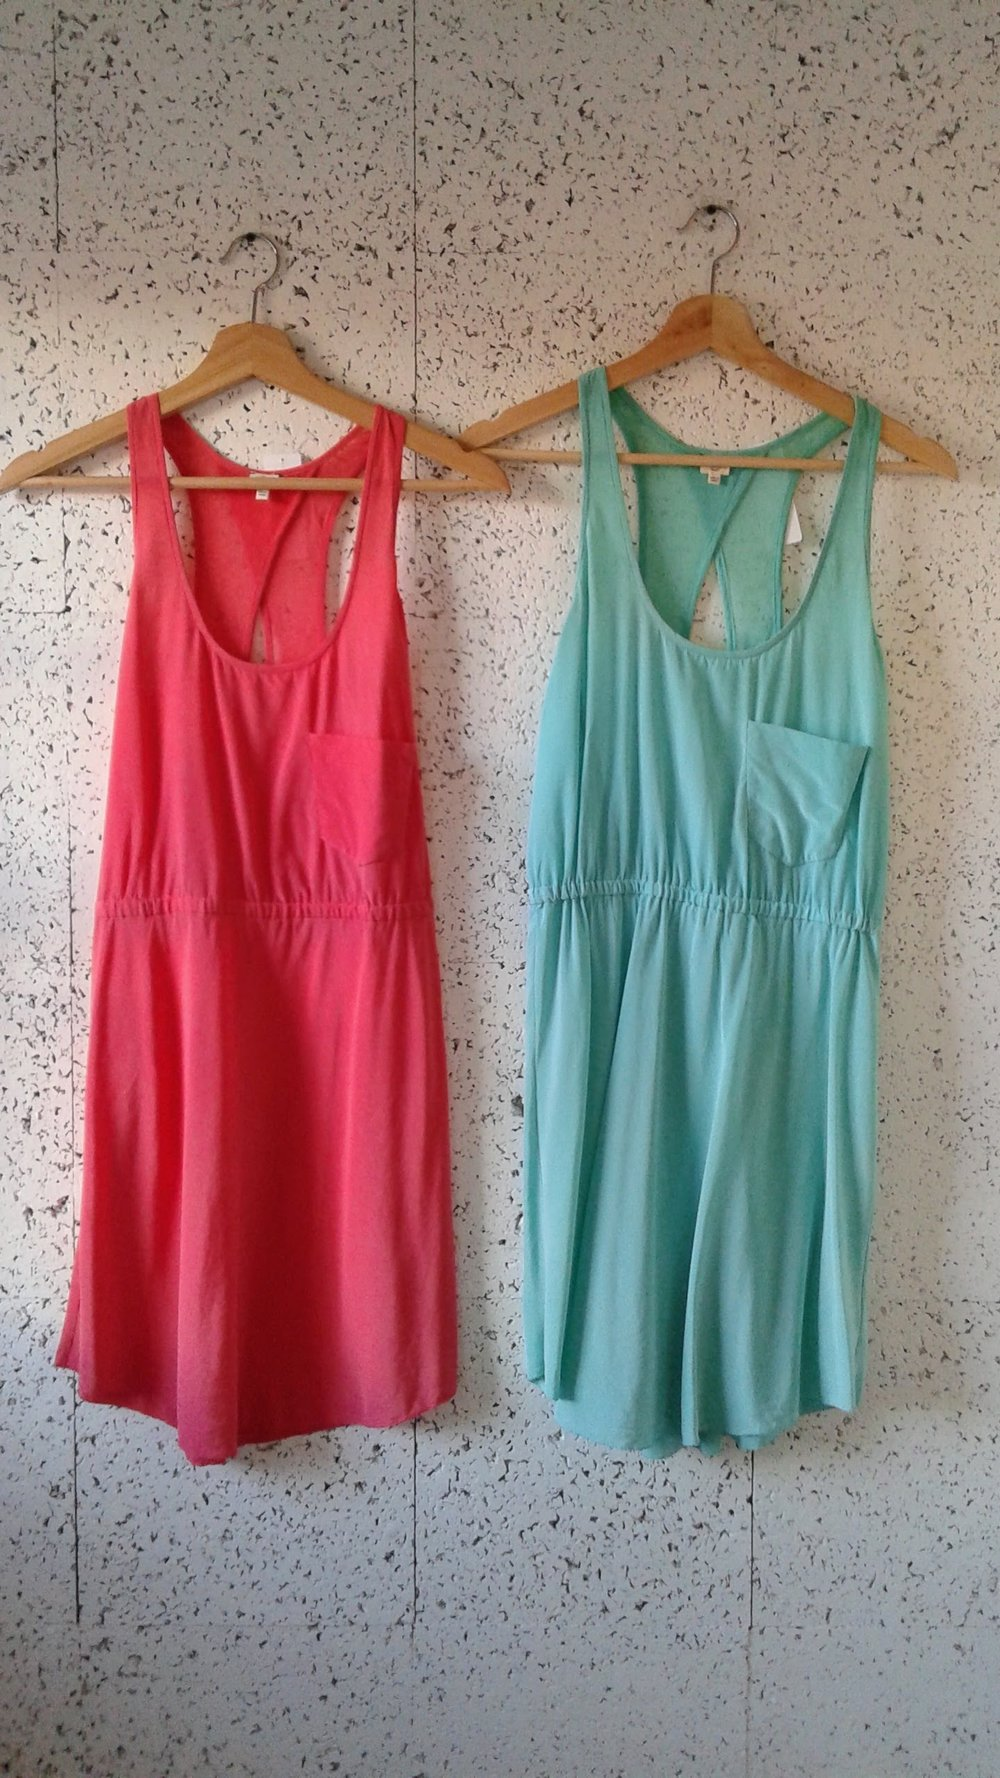 Coral Wilfred dress; Size XS, $40. Turquoise Wilfred Dress; Size S, $40